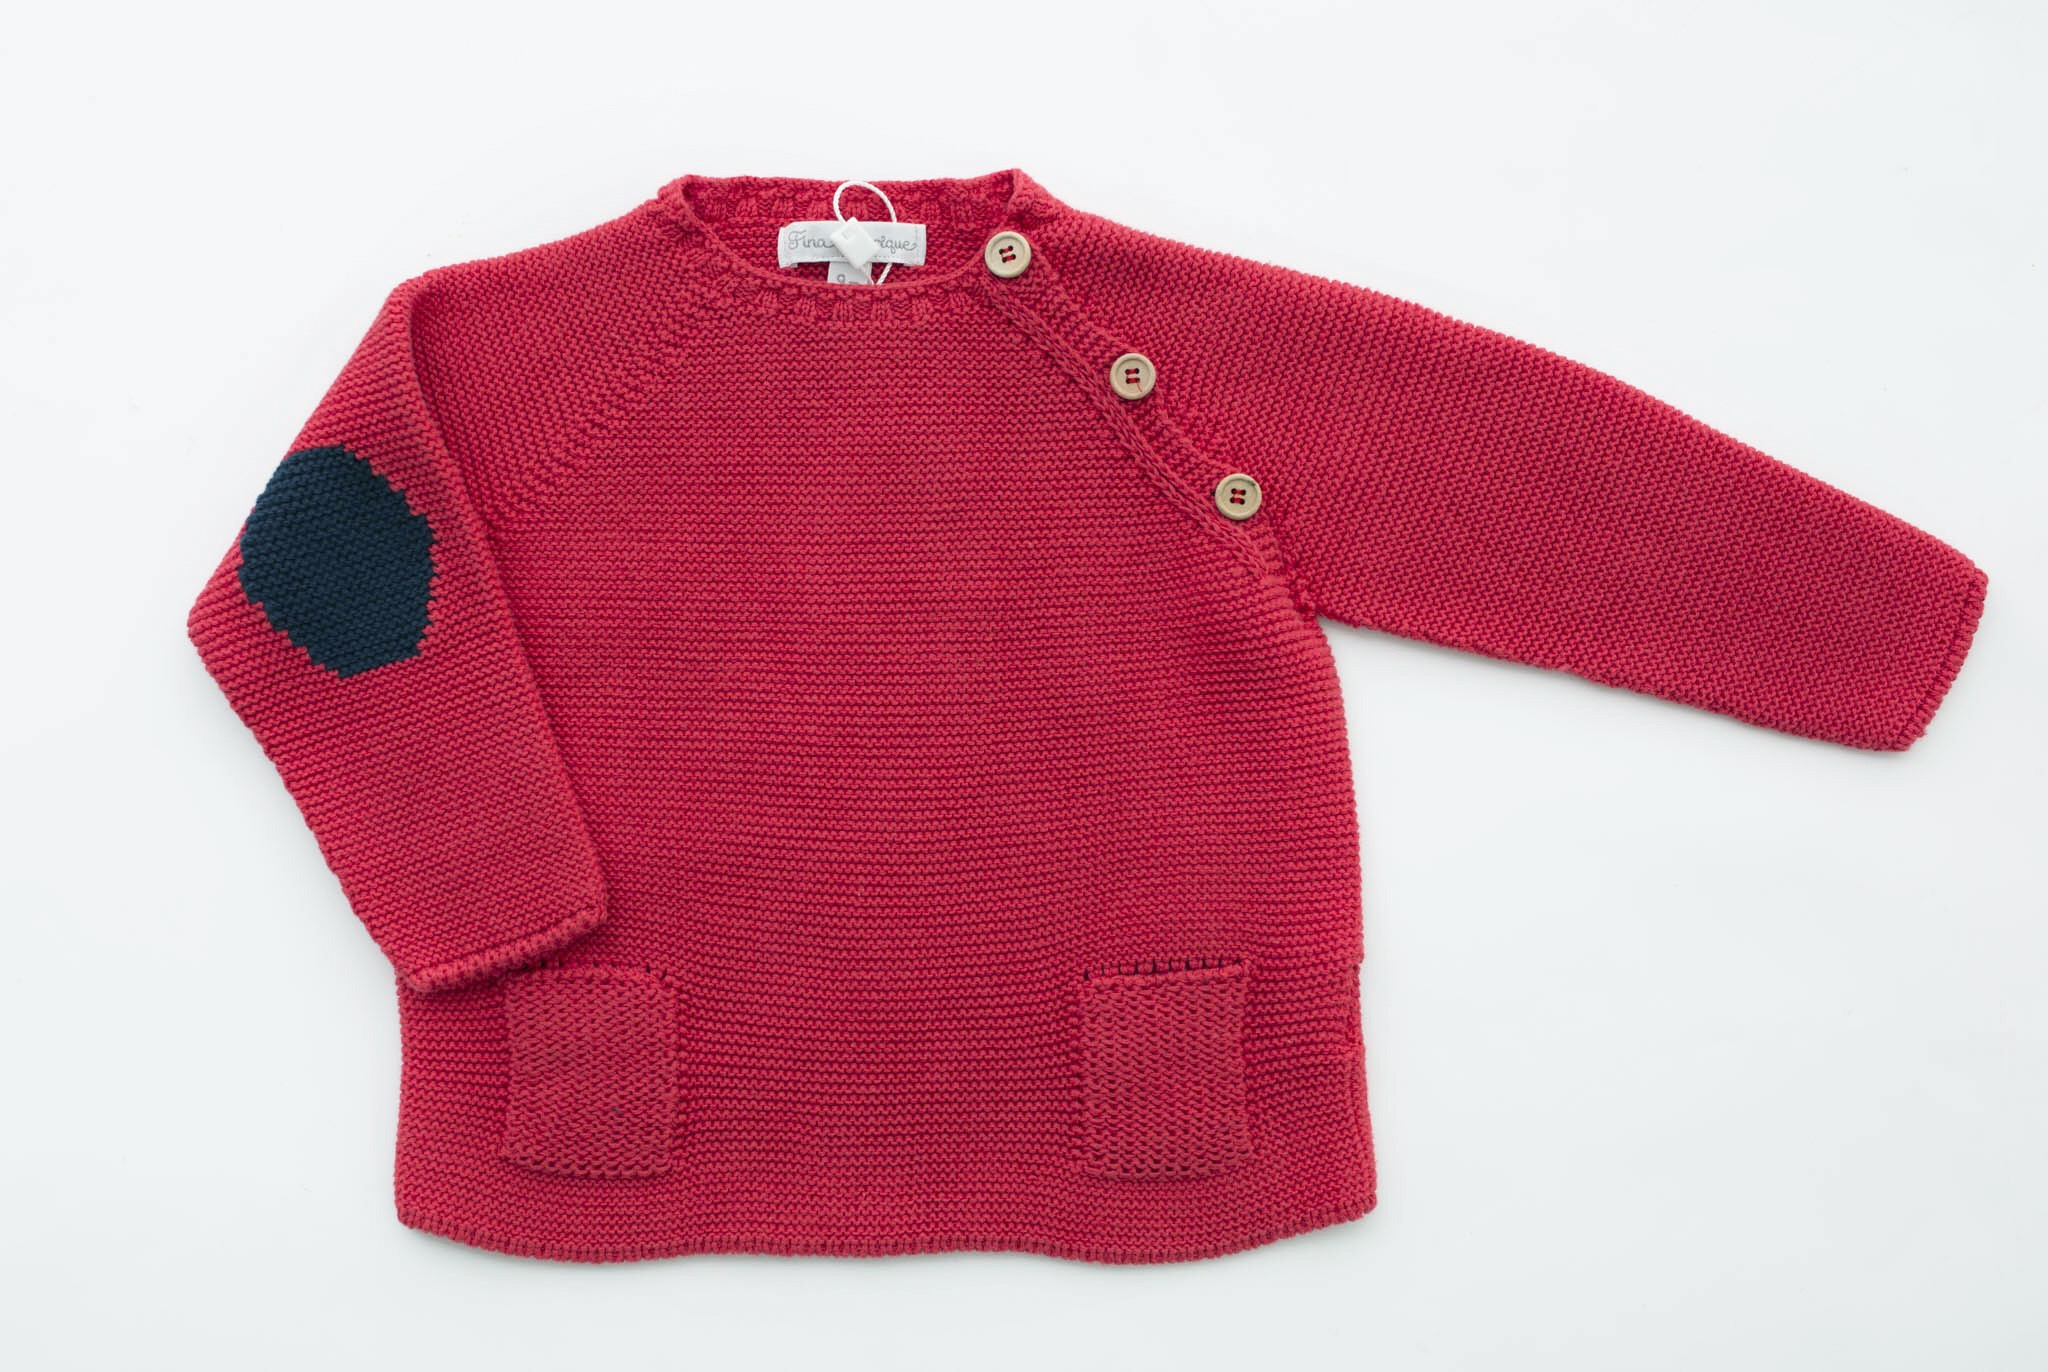 FINA EJERIQUE BOYS RED & NAVY BLUE KNITTED CARDIGAN REF.: B26H08